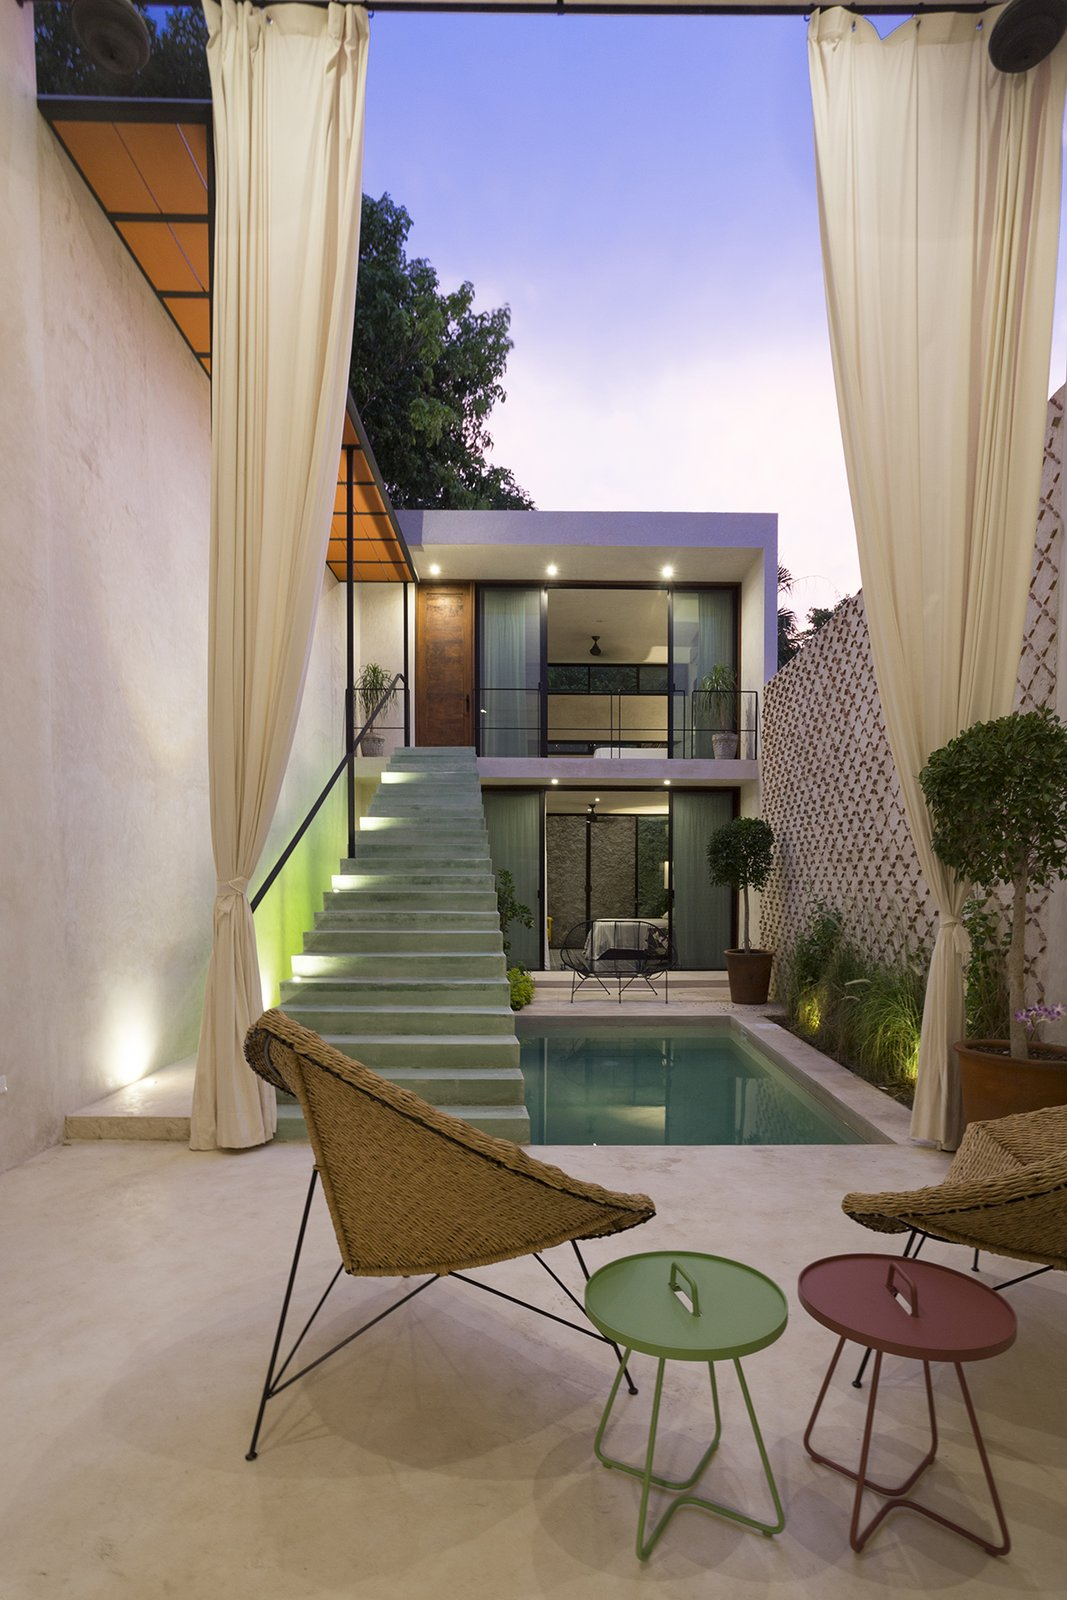 The patio is the prefect conector of the old and new architecture Tagged: Outdoor, Trees, Grass, Plunge Pools, Tubs, Shower, Small Patio, Porch, Deck, Concrete Patio, Porch, Deck, and Horizontal Fences, Wall.  Lemon Tree House by Taller Estilo Arquitectura S de R.L de C.V